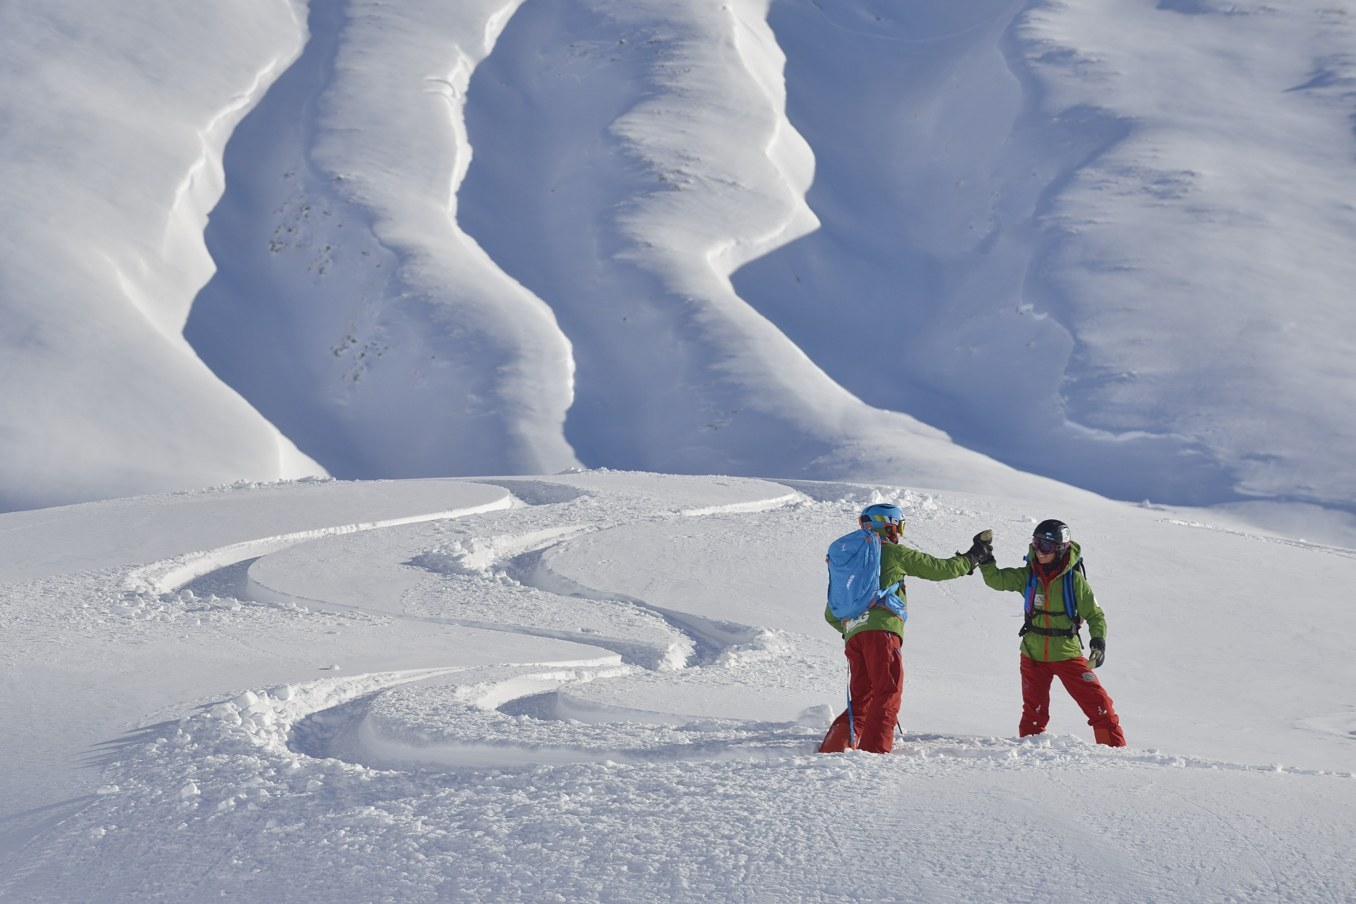 A-Z Skischule Arlberg, high five, ski school, guide, guiding, book ski lesson